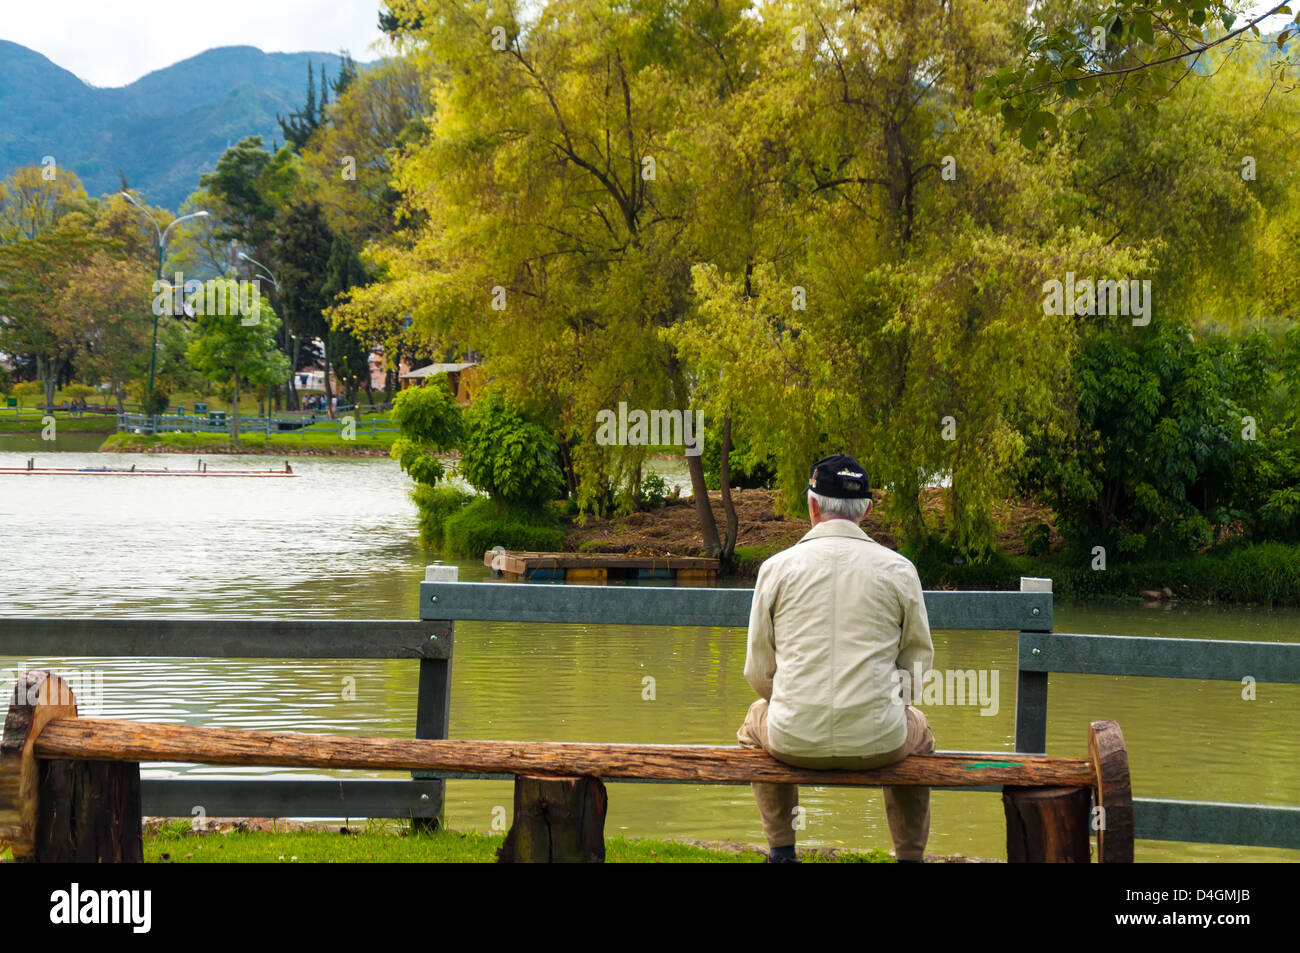 An elderly man sitting on a park bench in Bogota, Colombia - Stock Image